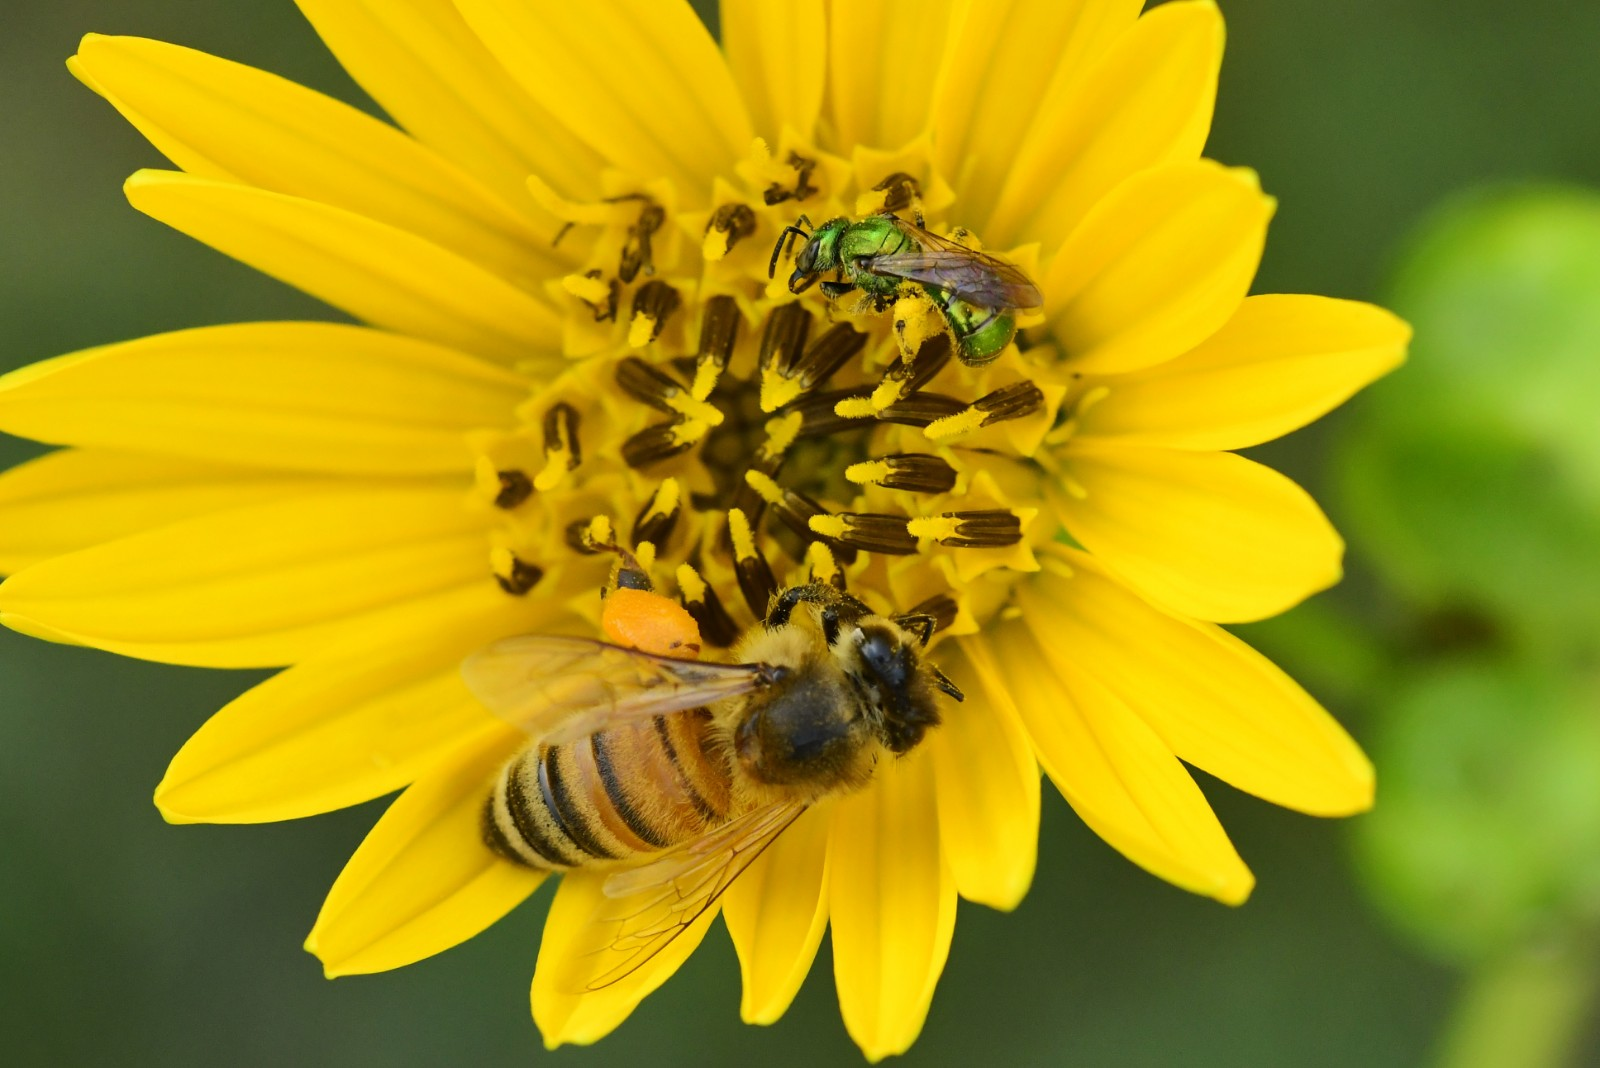 At the bottom, a bee pollinates a prairie dock (Silphium terebinthinaceum), a bright yellow flower. At the top of the prairie dock, a sweat bee rests.